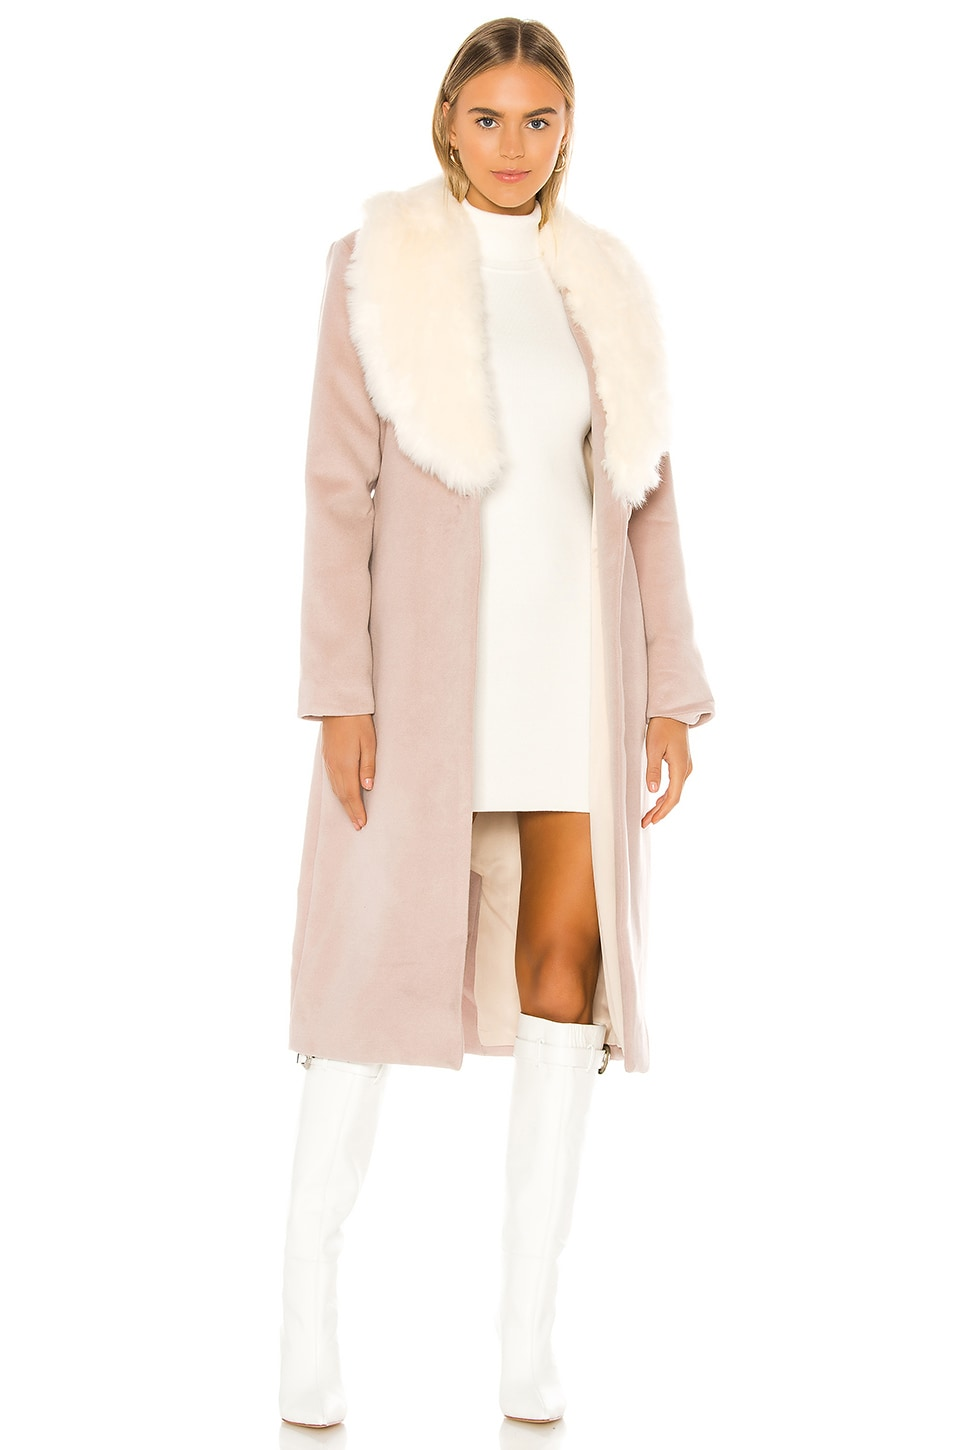 MAJORELLE Milford Coat in Tan Almond